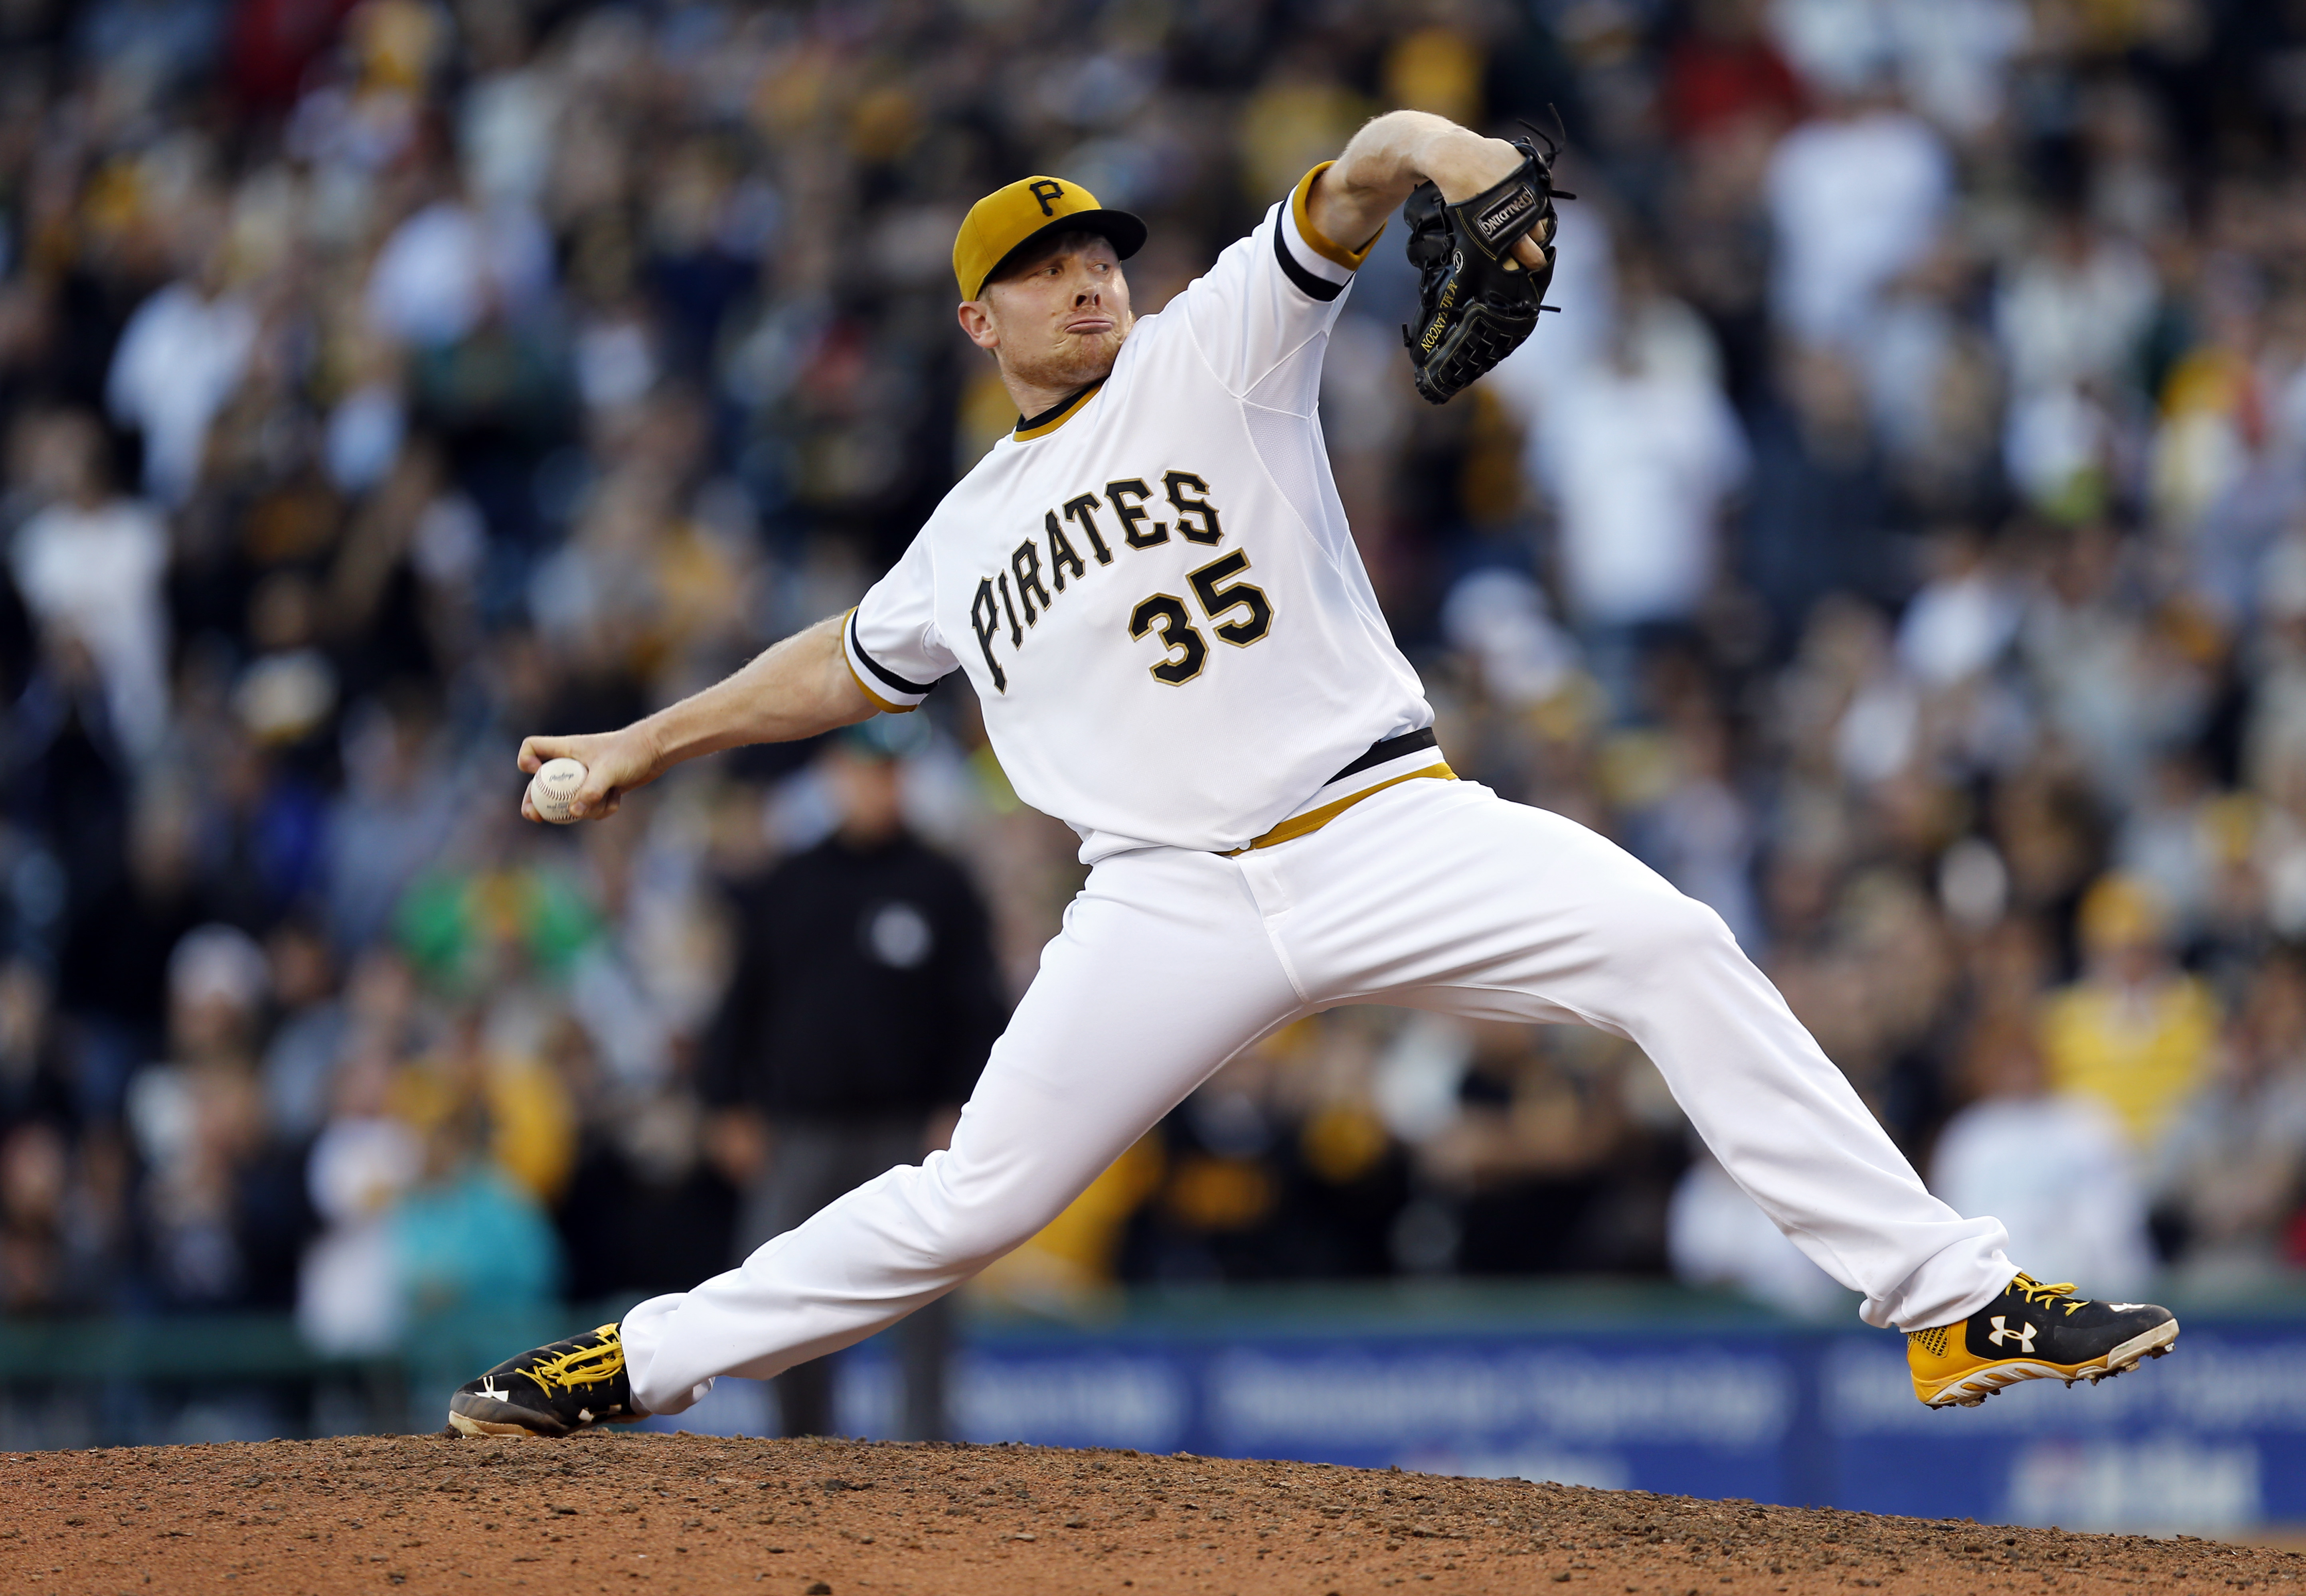 Pittsburgh Pirates relief pitcher Mark Melancon throws against the Cincinnati Reds in the ninth inning of a baseball game, Sunday, Oct. 4, 2015, in Pittsburgh. The Pirates won 4-0 and clenched the home field for their upcoming wild-card playoff game again